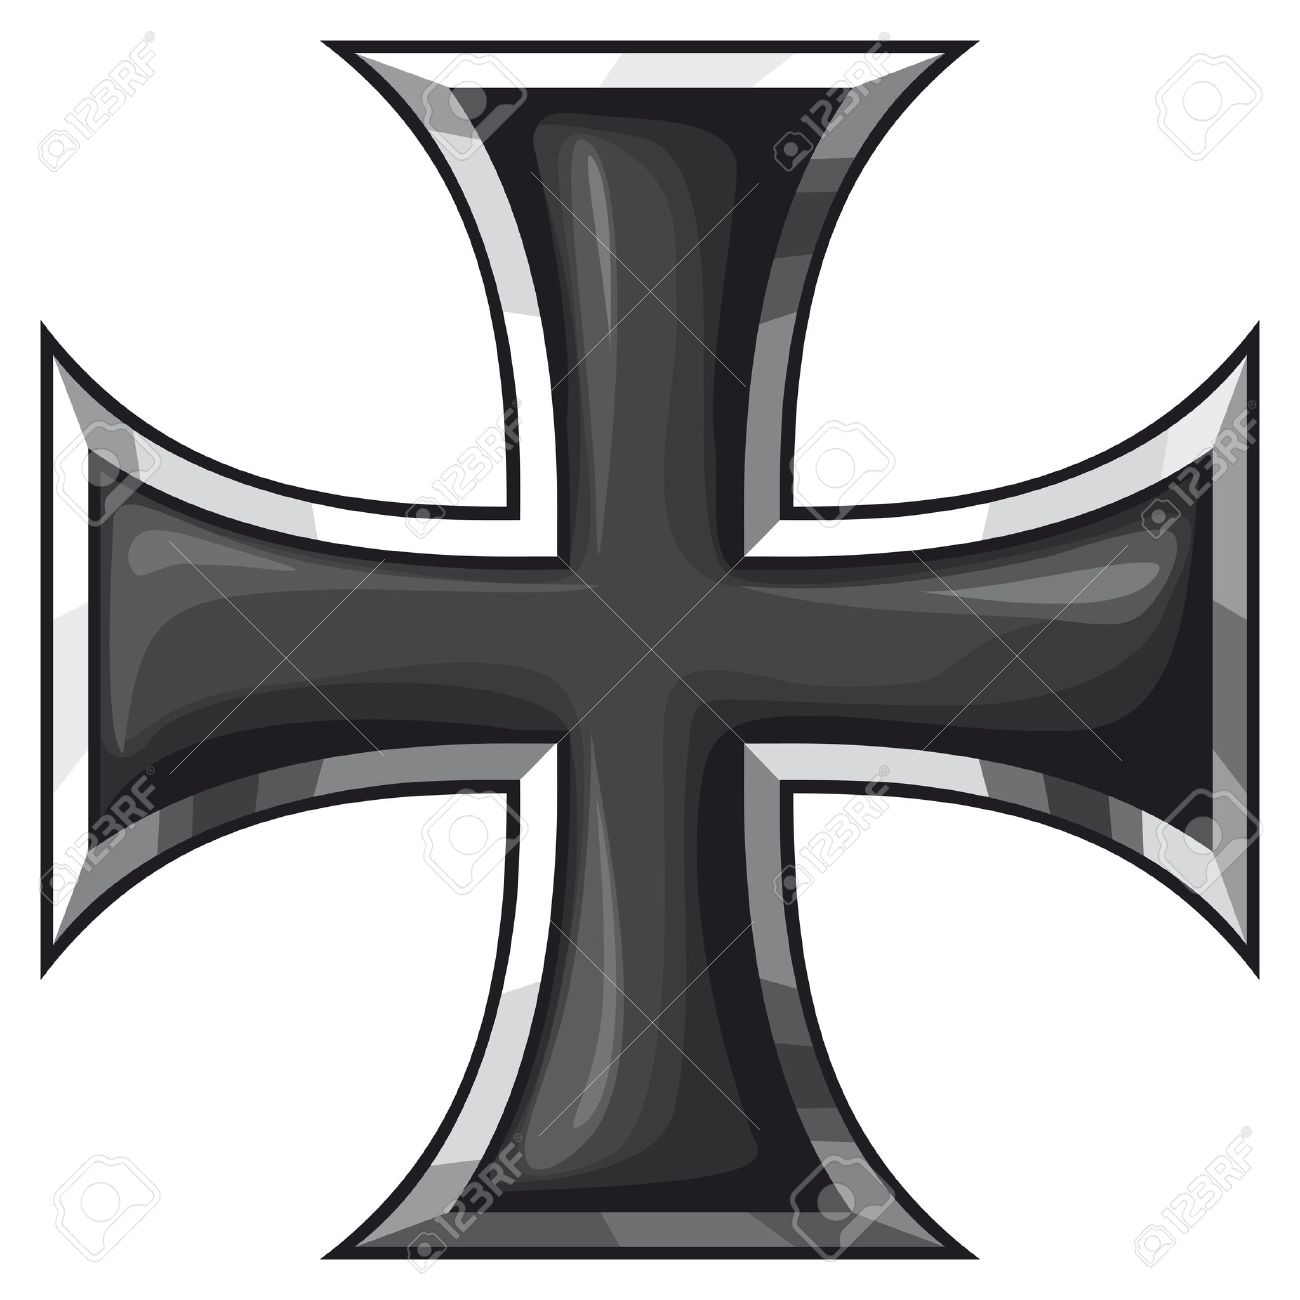 Iron cross vector clipart image freeuse library Iron Cross Vector 8 - 1300 X 1300 - Making-The-Web.com image freeuse library